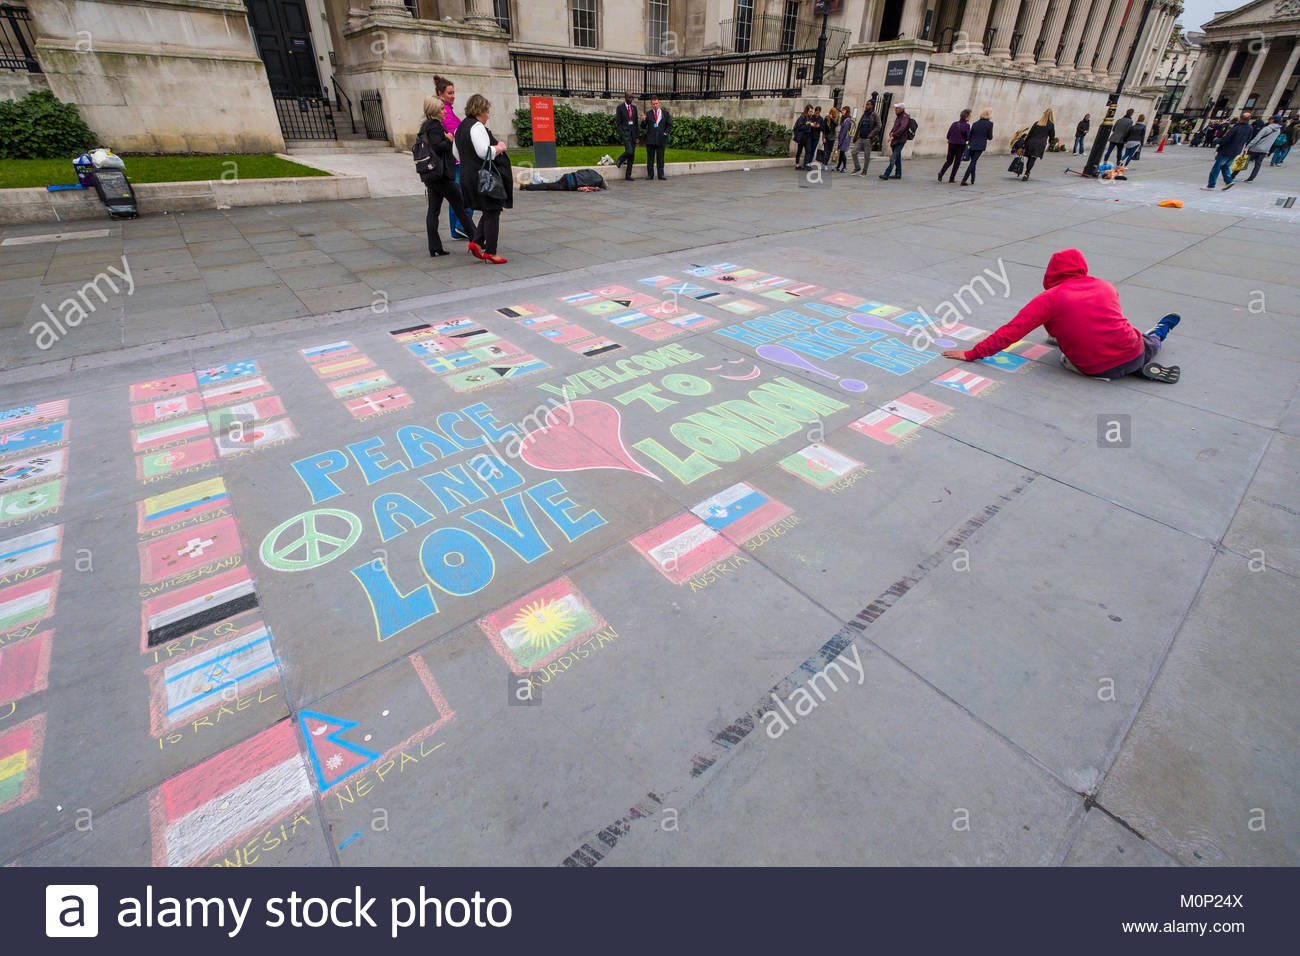 Man using colored chalk to draw flags of various countries on ground of Trafalgar Square, City of Westminster, London, Stock Photo